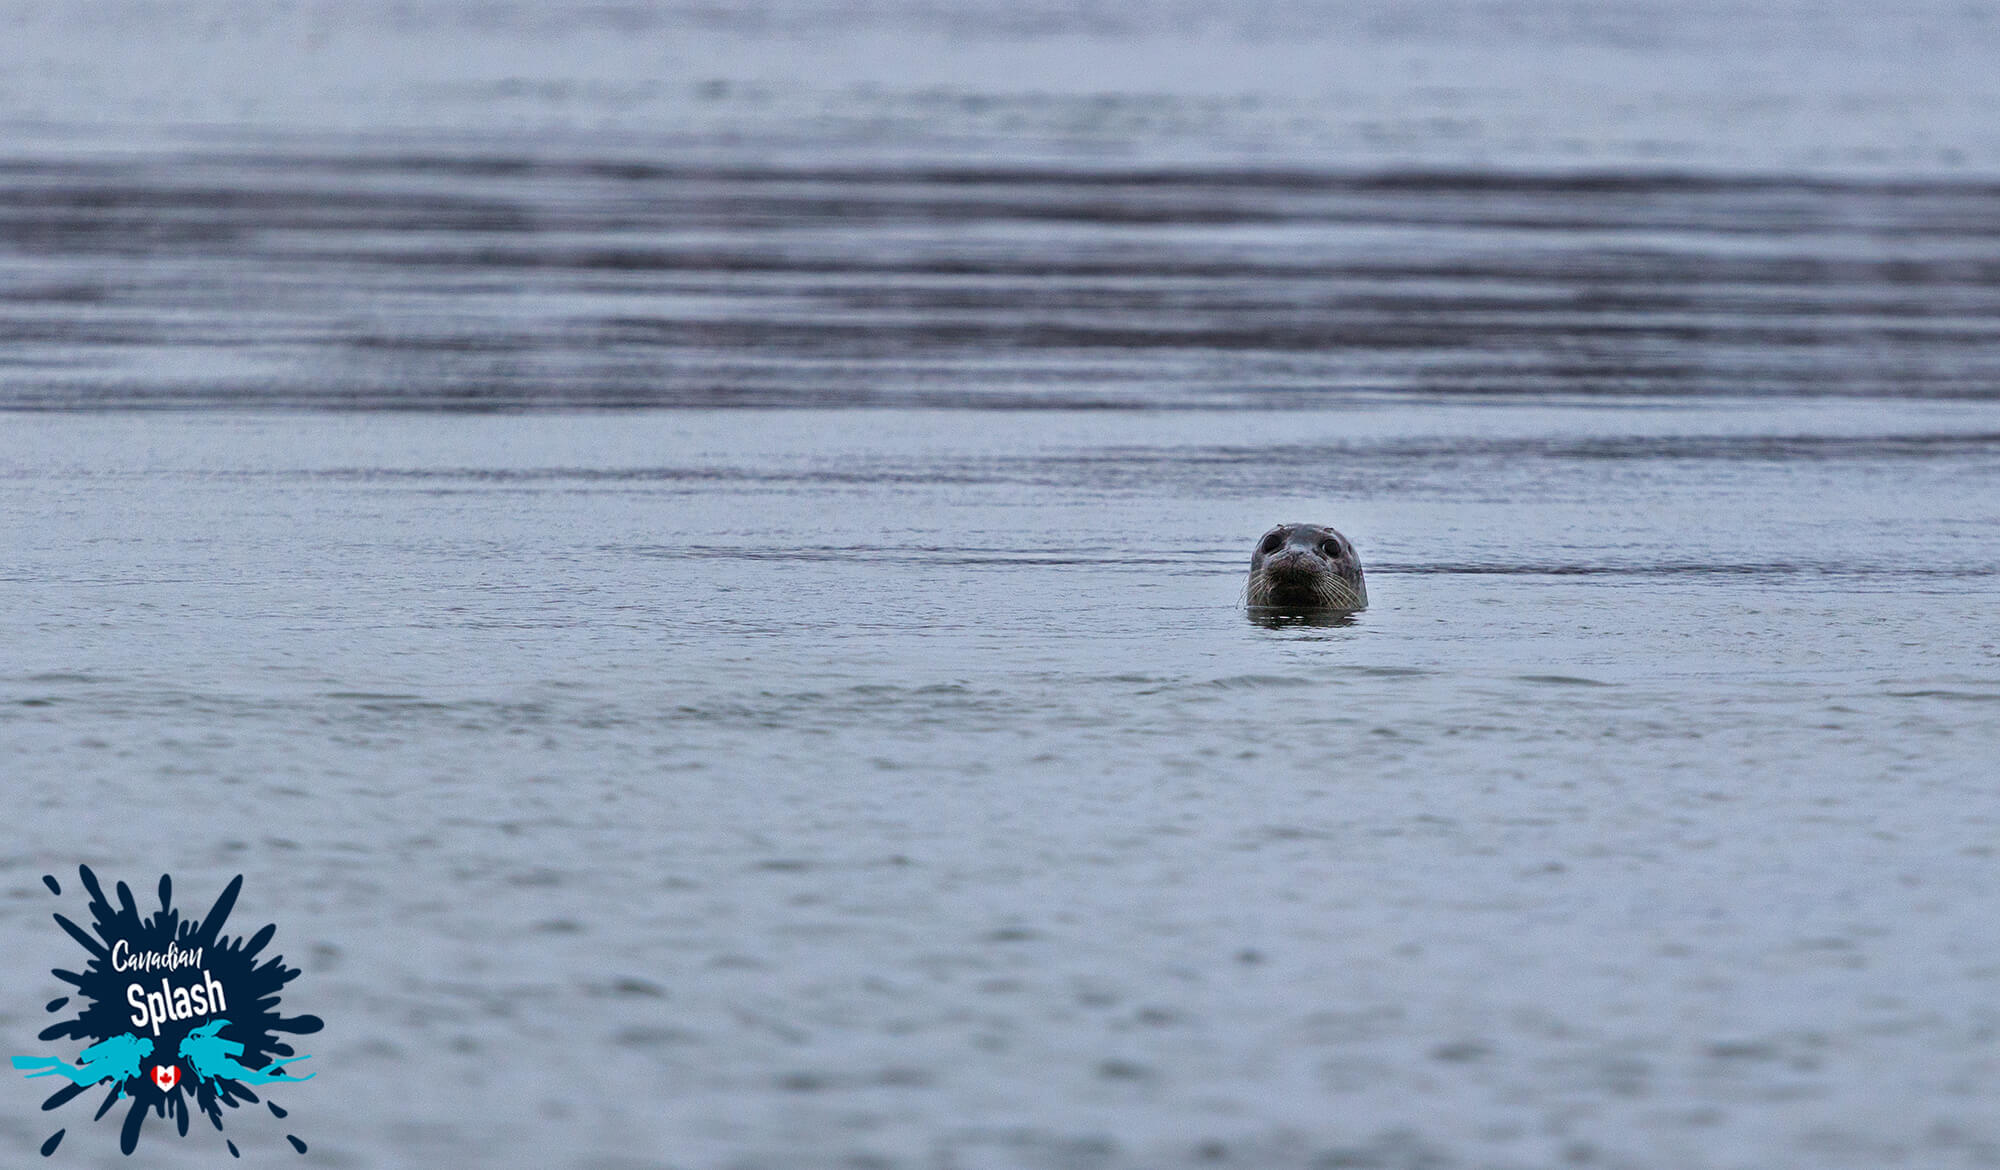 A Seal Popping It's Head Out Of The Bay Of Fundy On Deer Island, New Brunswick, Canadian Splash